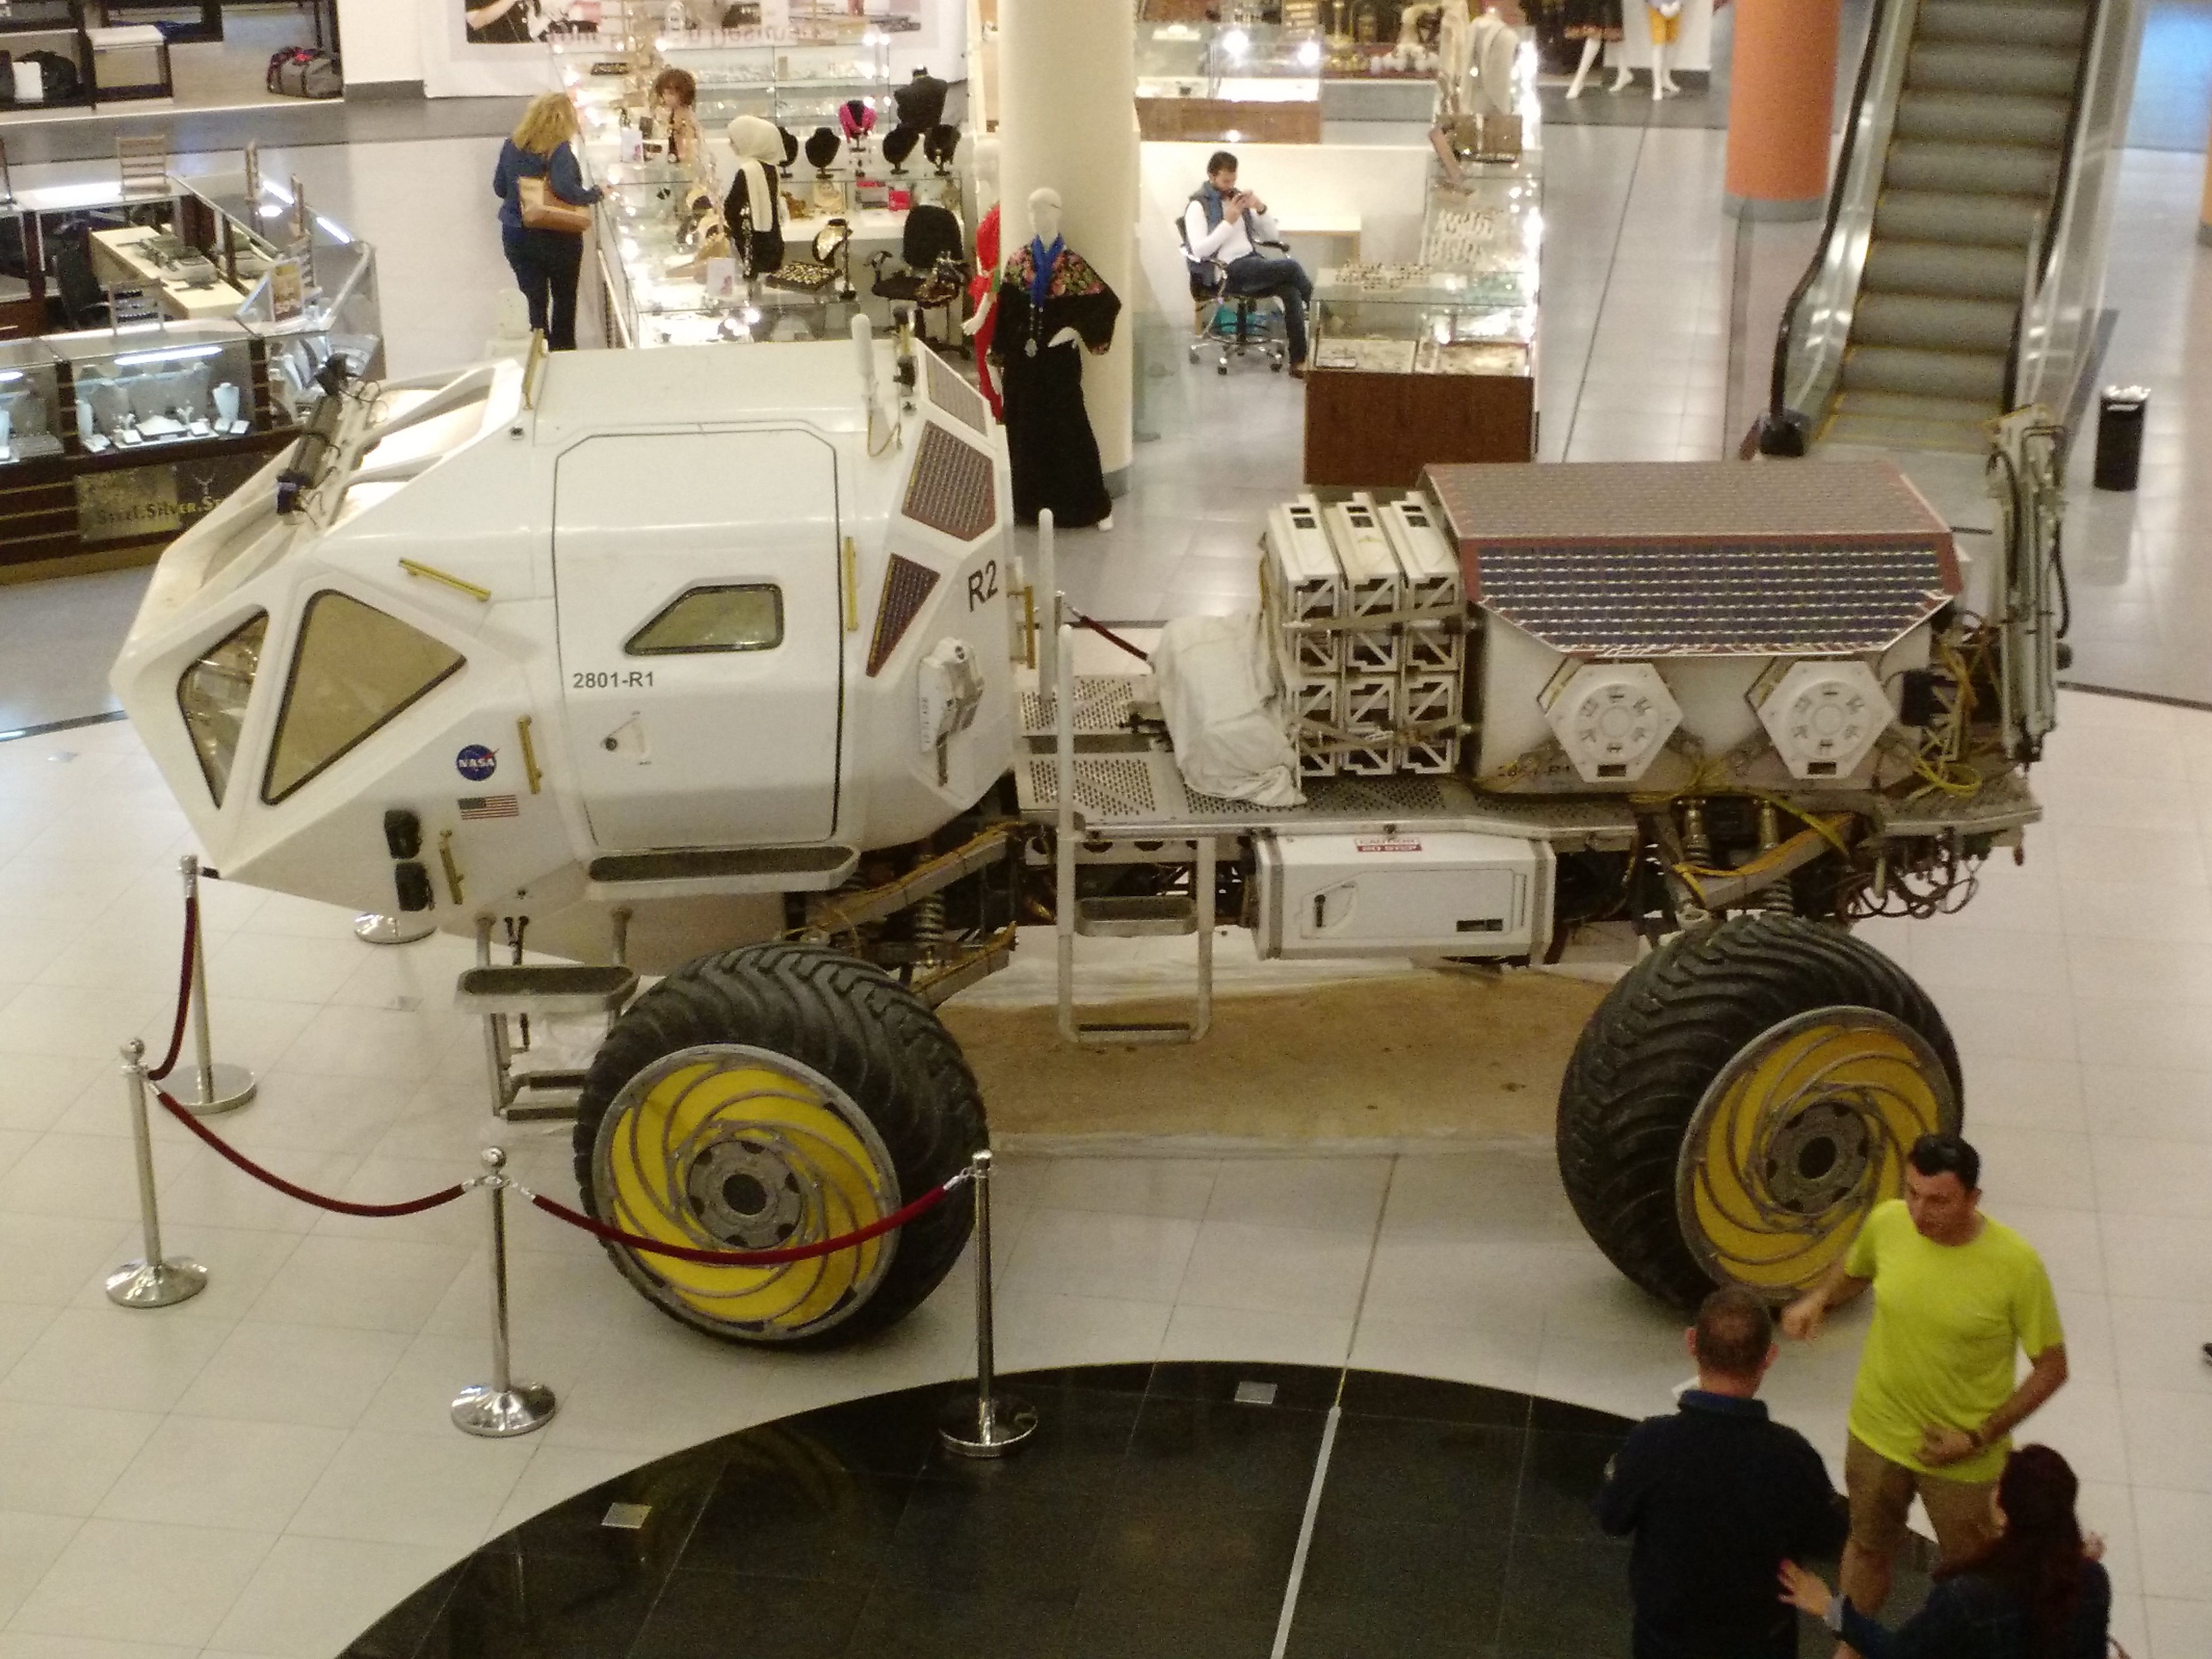 The Martian`s Mars Rover in Baraka Mall, Amman, Jordan - Album on Imgur